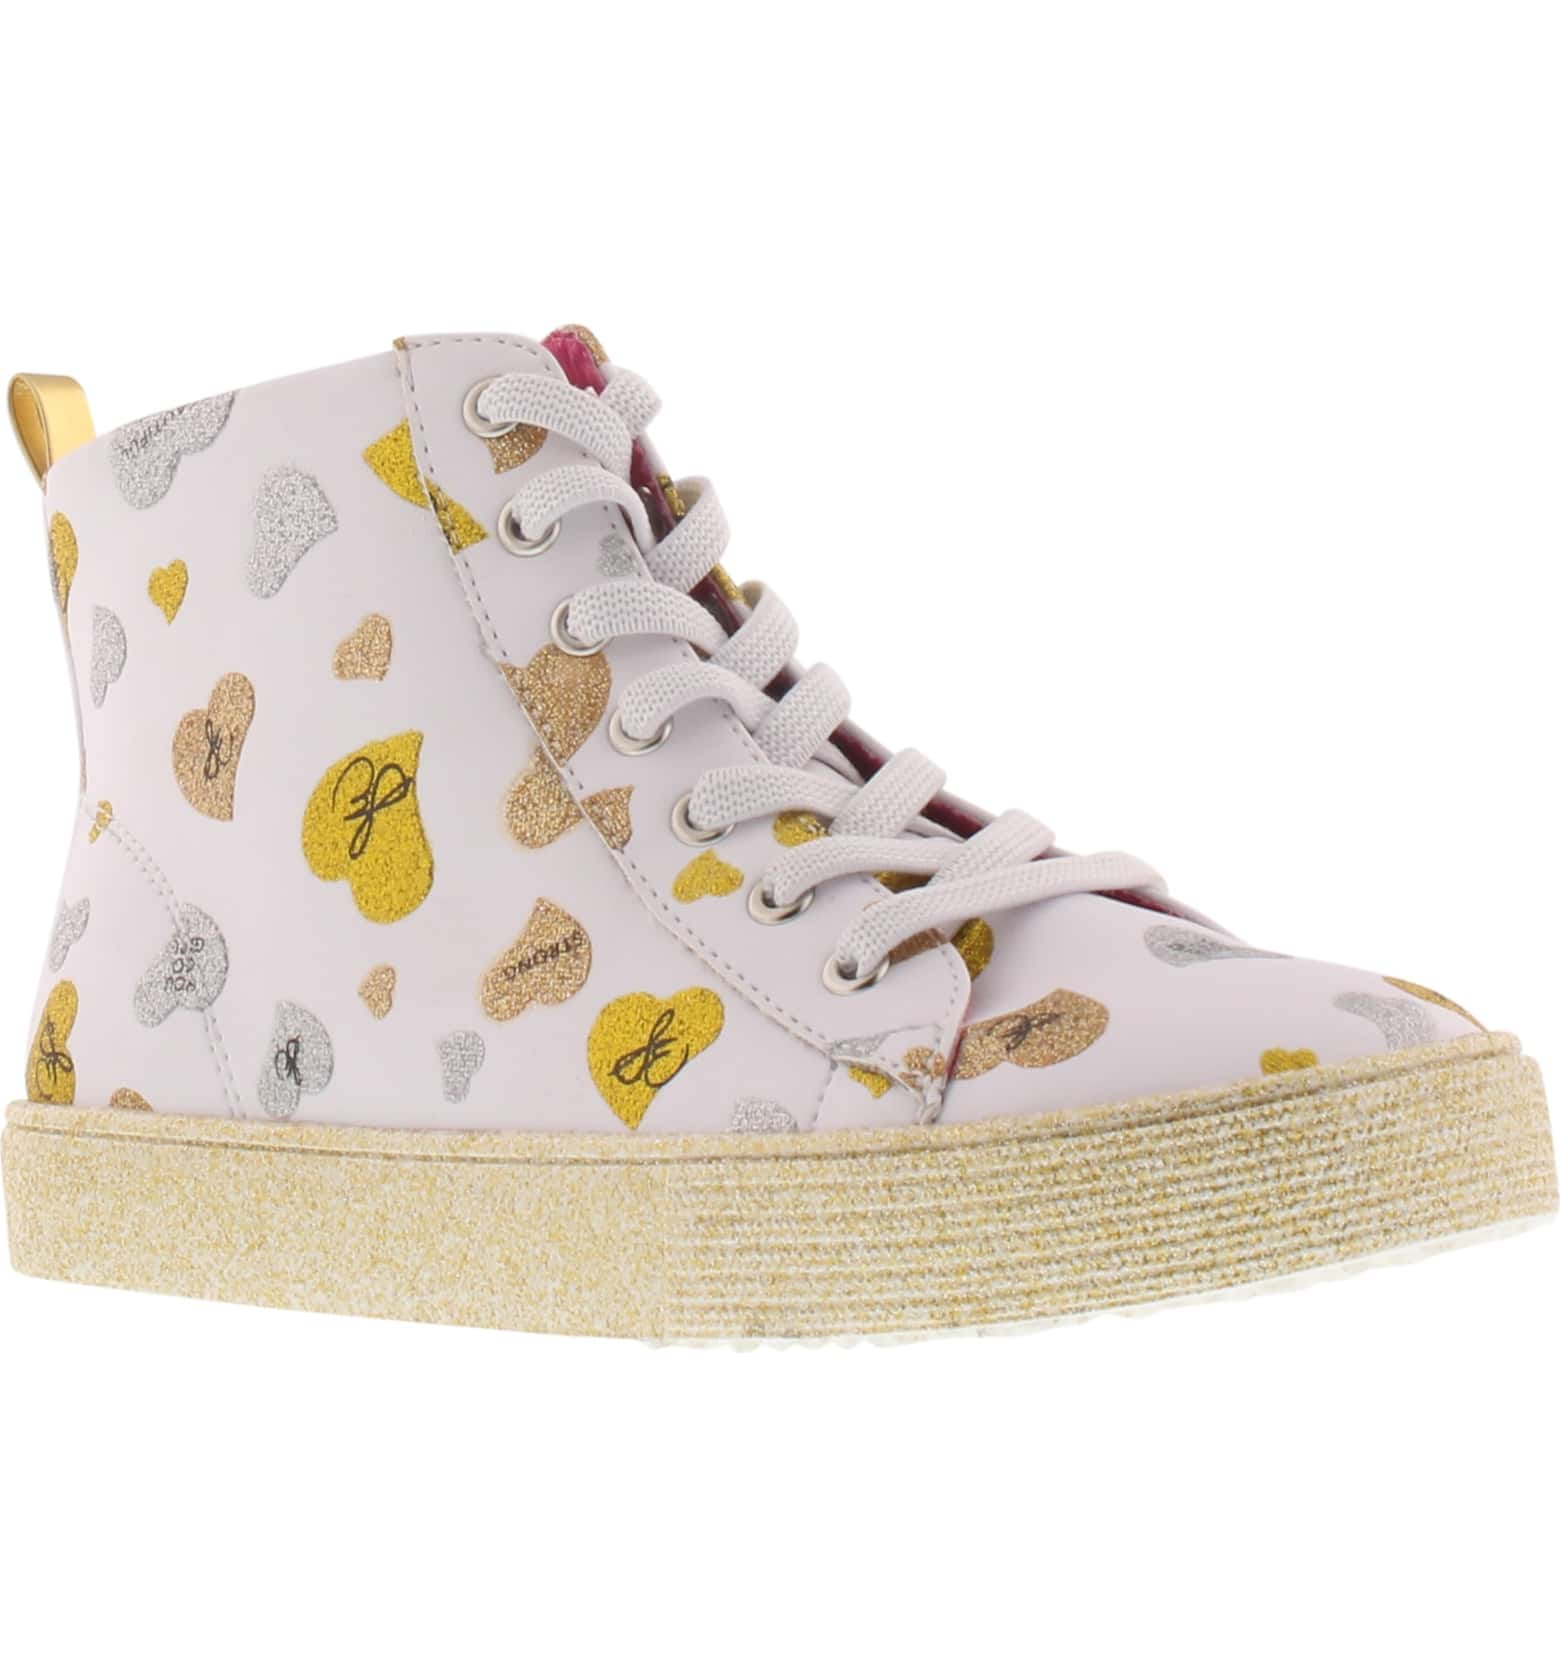 11 Cool Kids' Shoes We Love